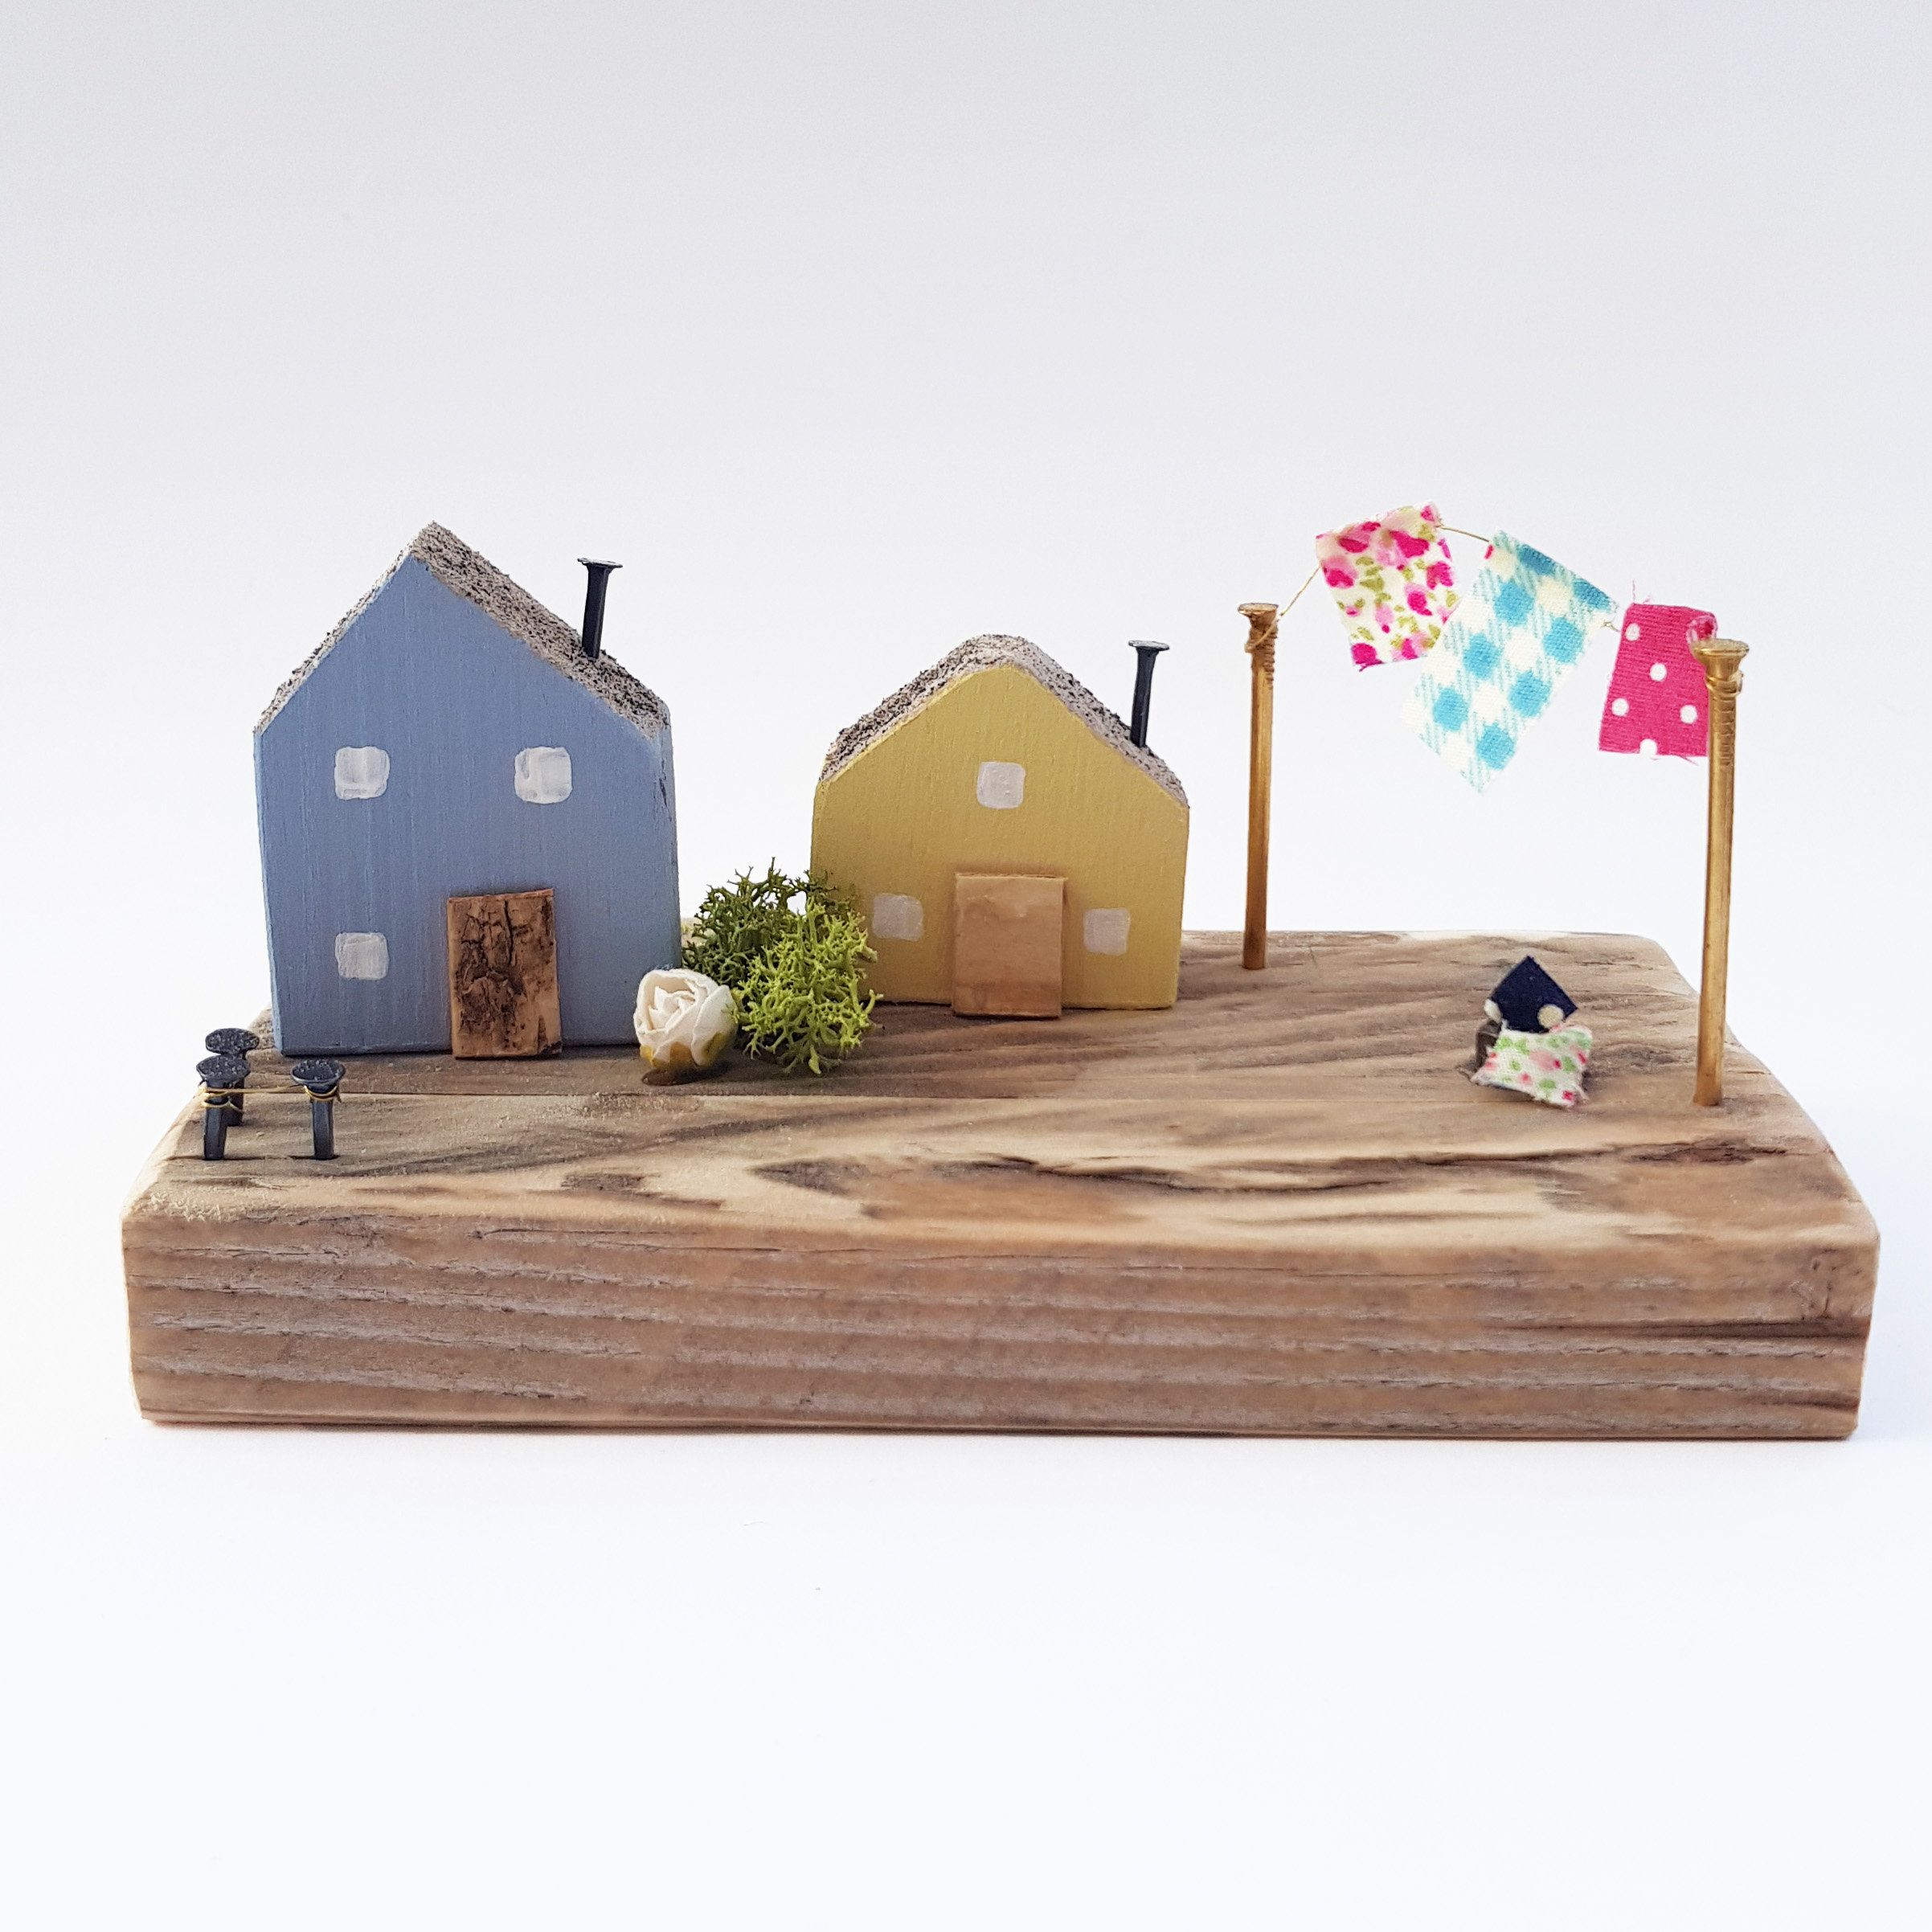 Miniature Houses Diorama Wooden House Scenes Ornaments For Etsy Tiny House Ornament House Ornaments Miniature Houses